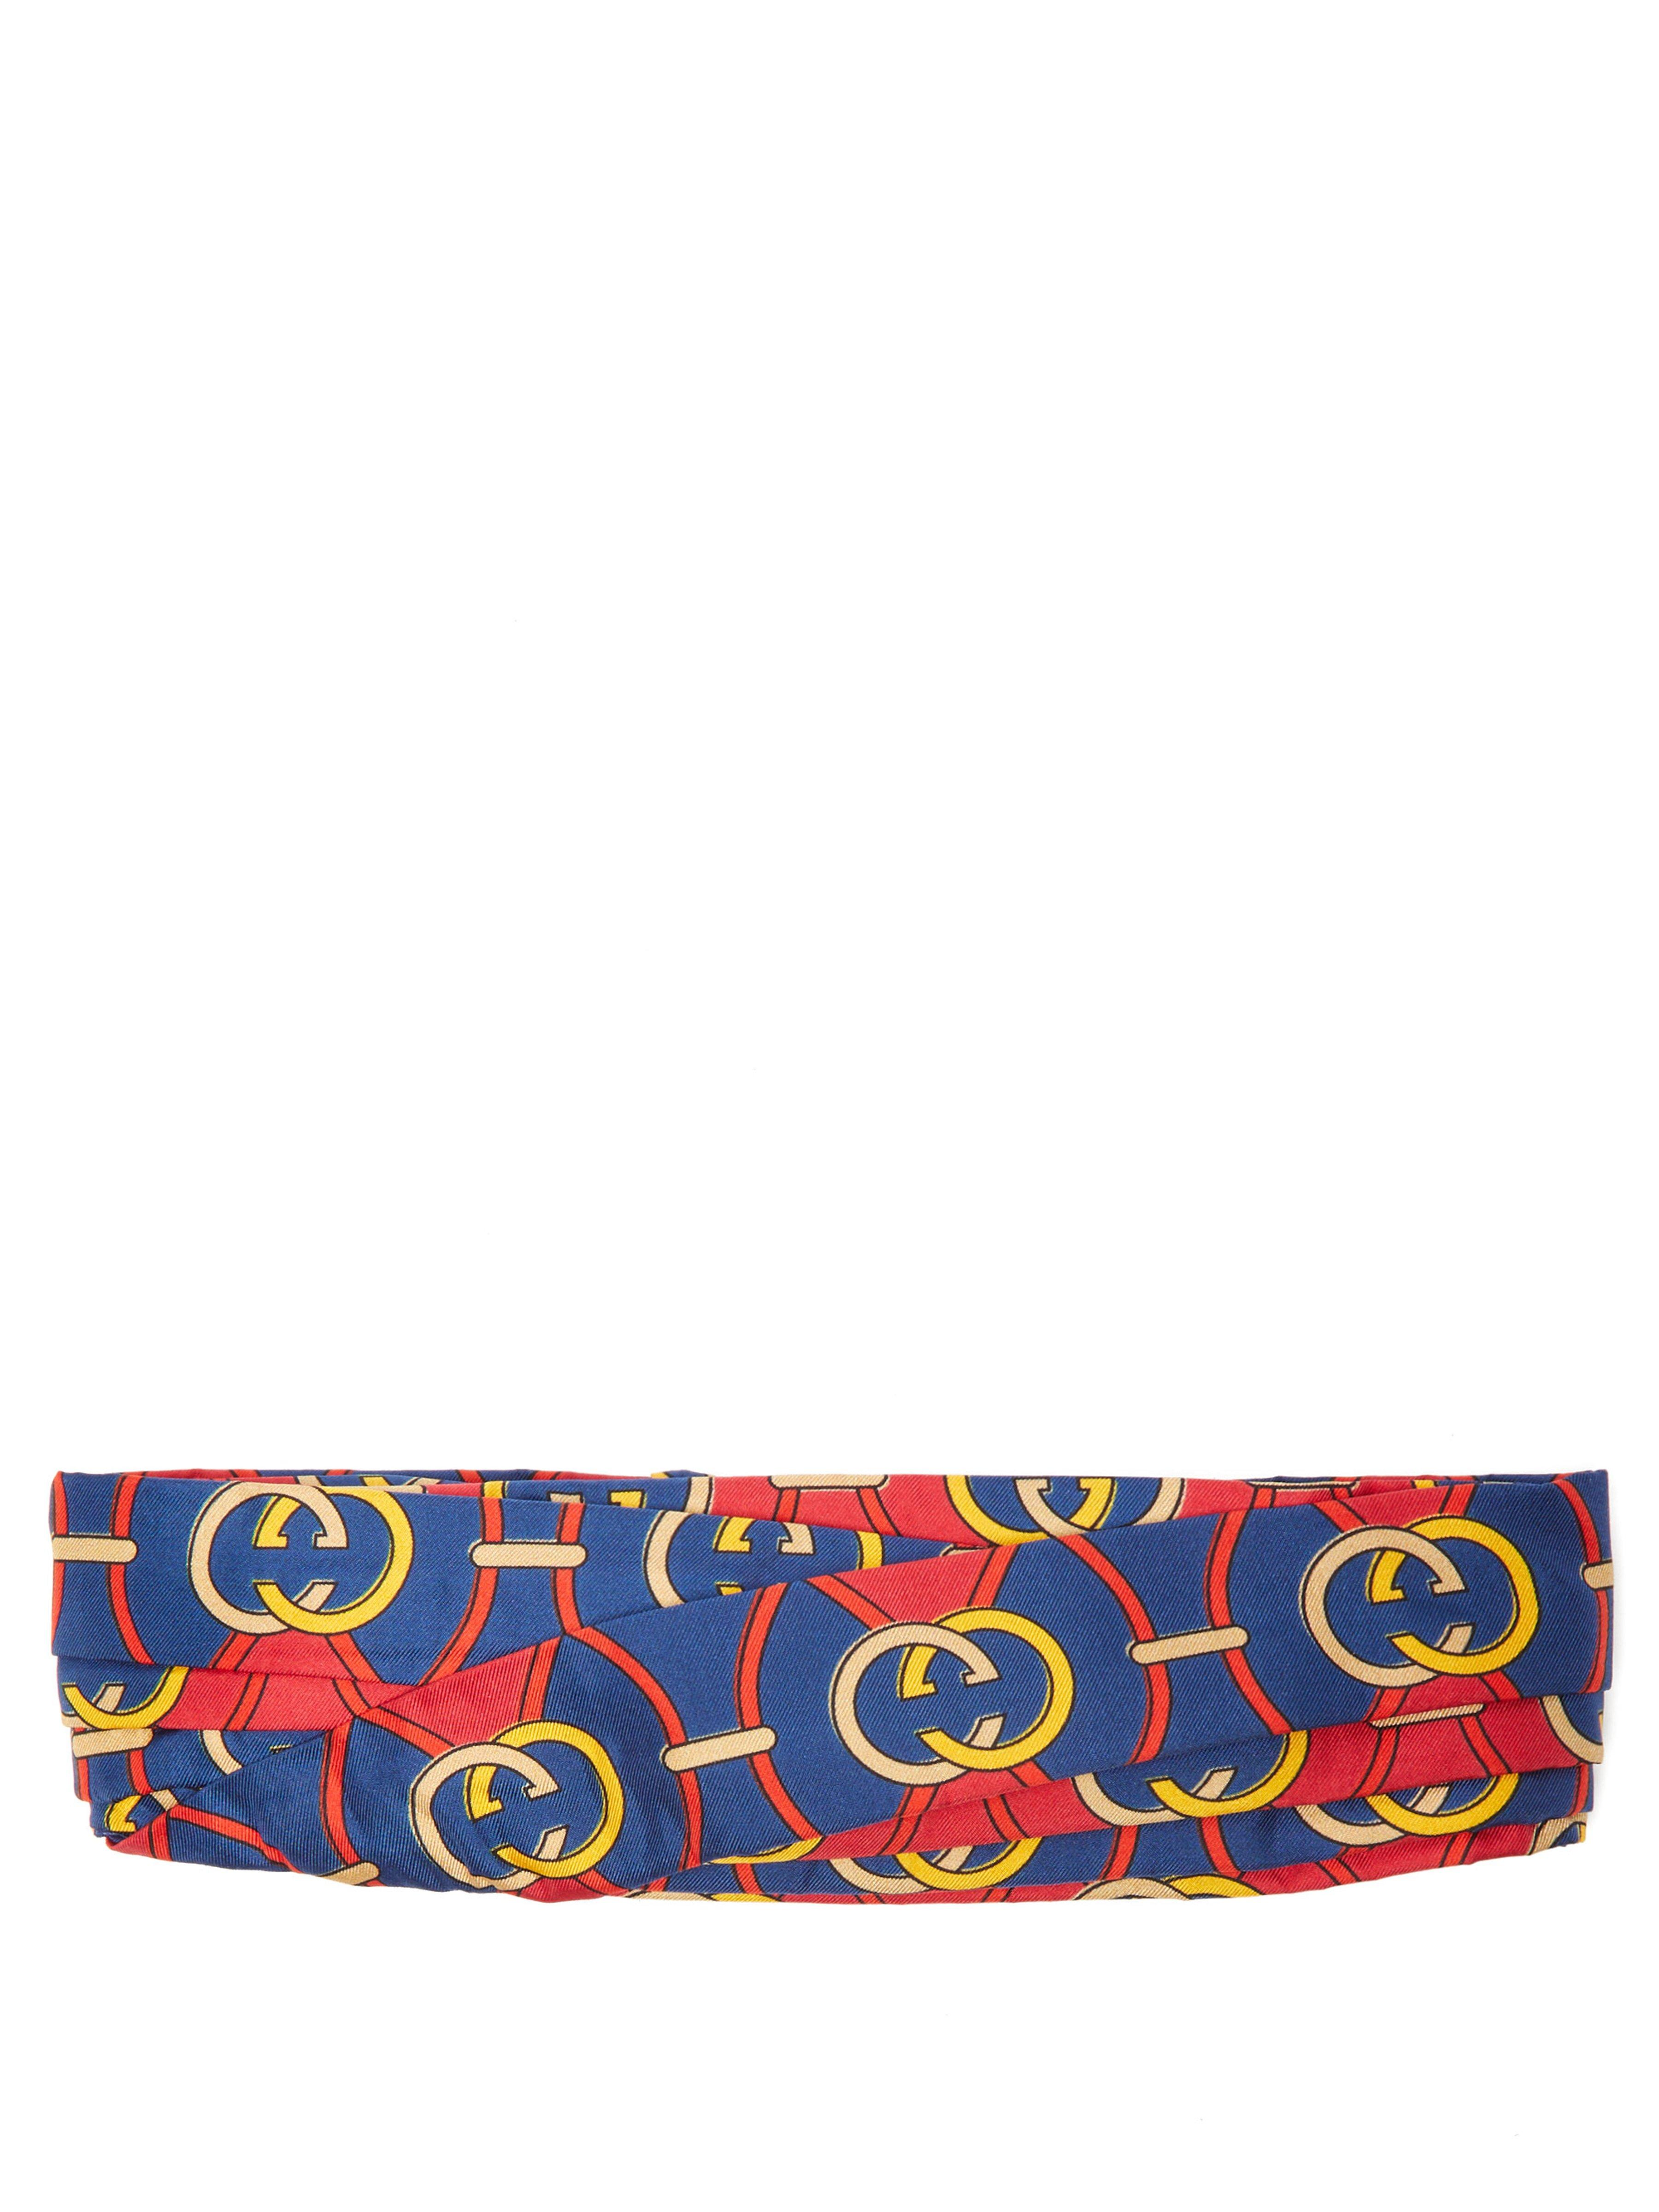 2a3809b500d Gucci Scarf With Interlocking G Stirrups Print in Red - Save 81% - Lyst